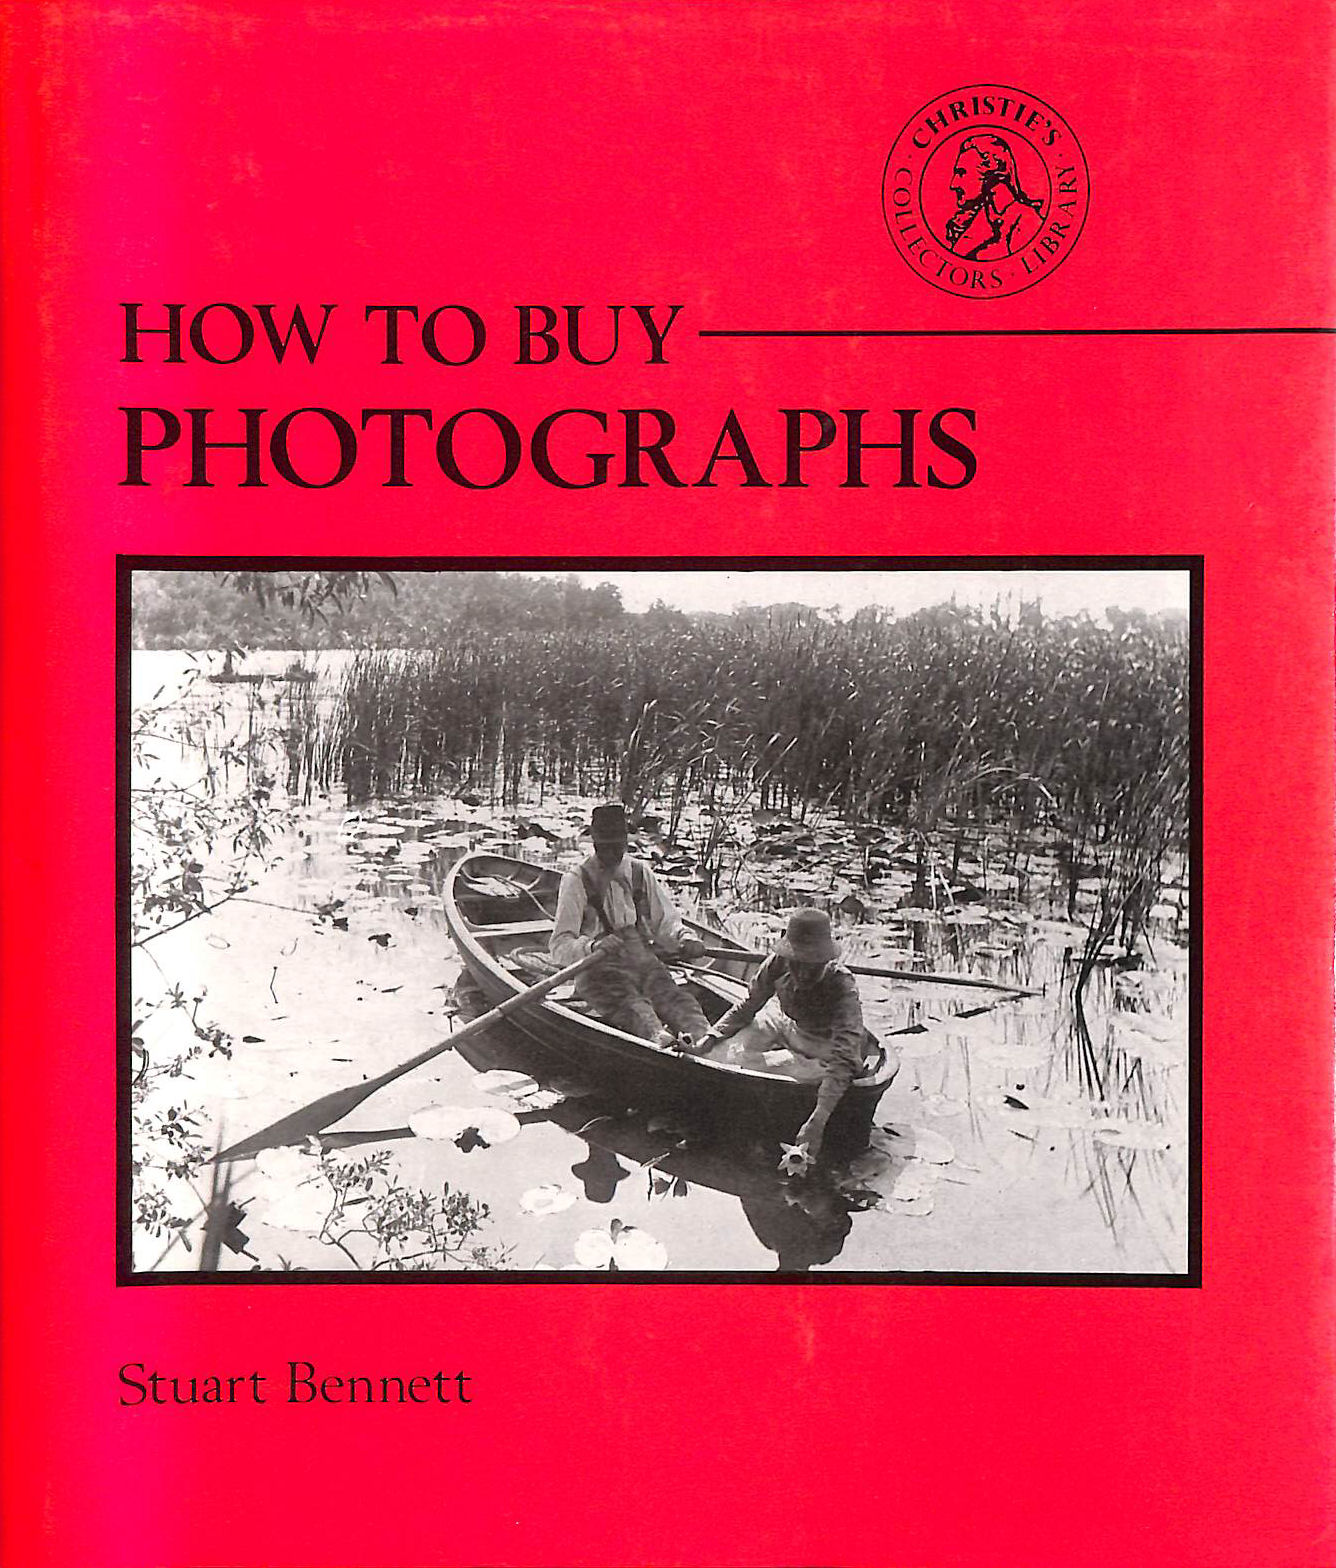 Image for How to Buy Photographs (Christie's Collectors Guides)